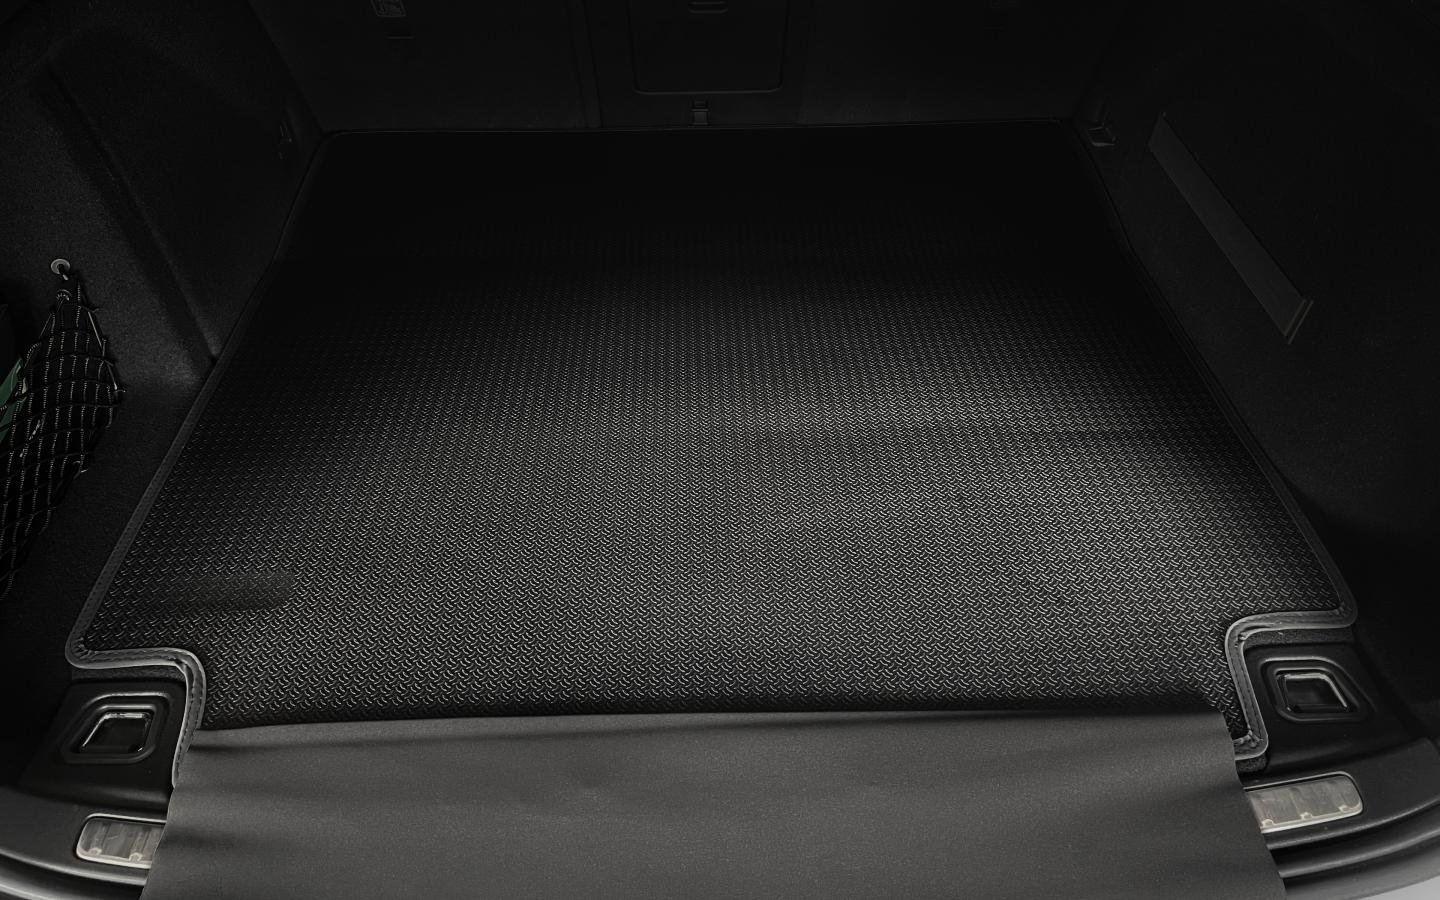 heico-sportiv-luggage-compartment-mat-02